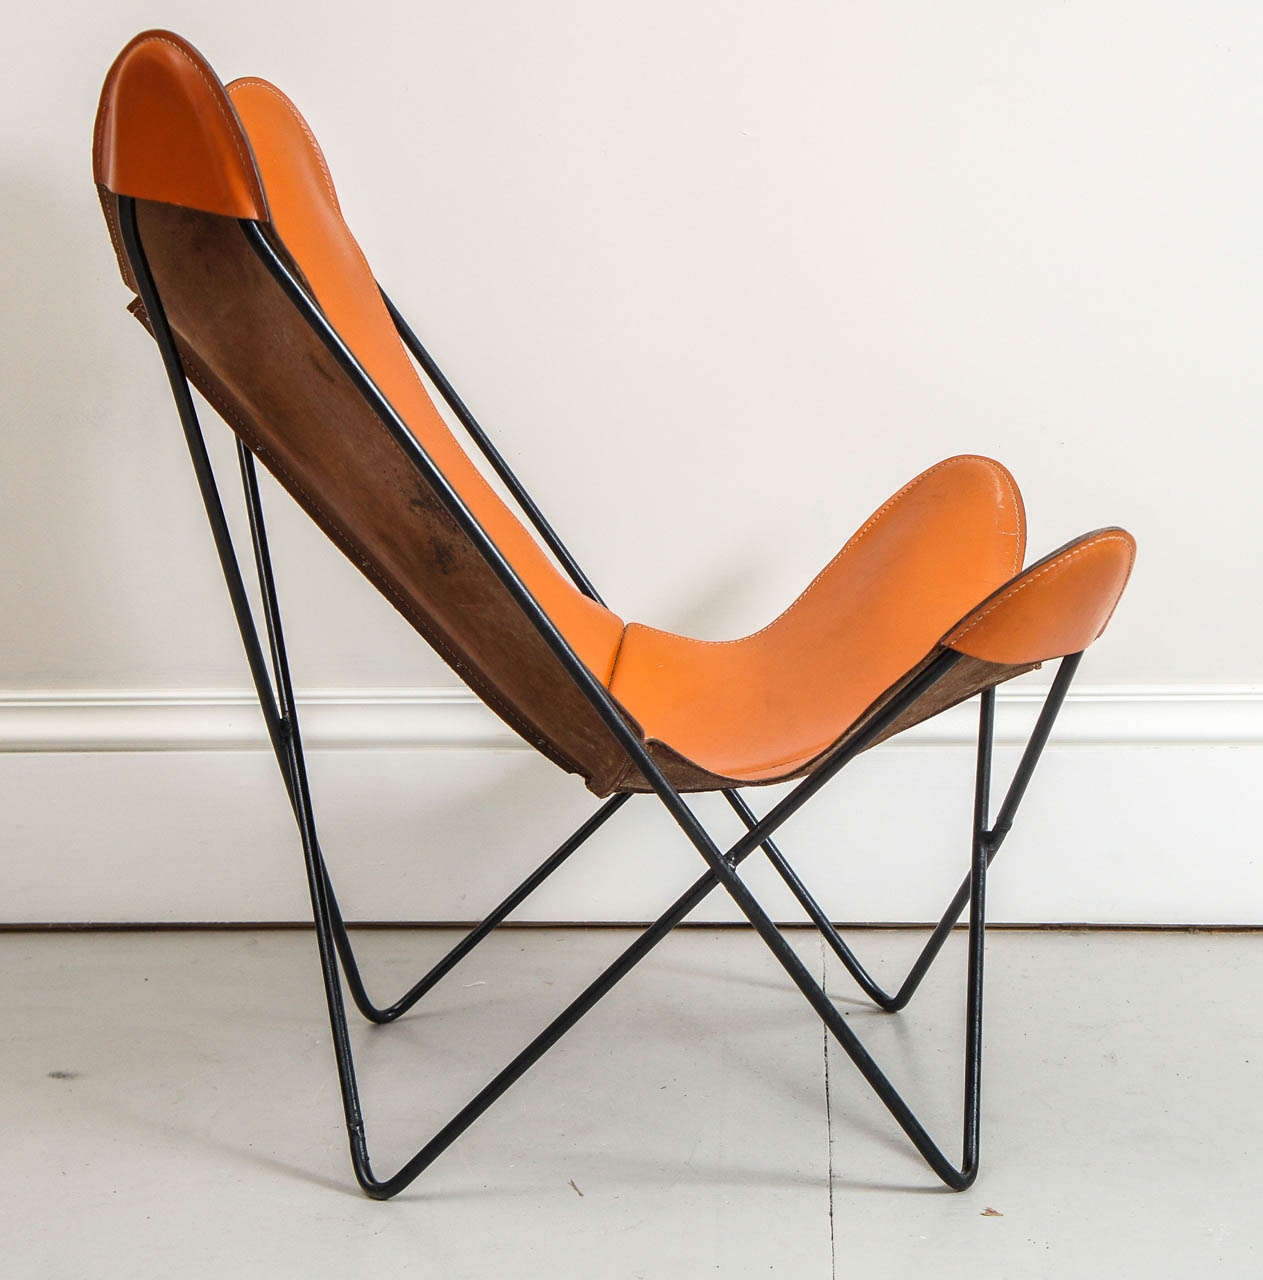 airborne butterfly chair plastic adirondack chairs and tables mid century hardoy in leather at 1stdibs